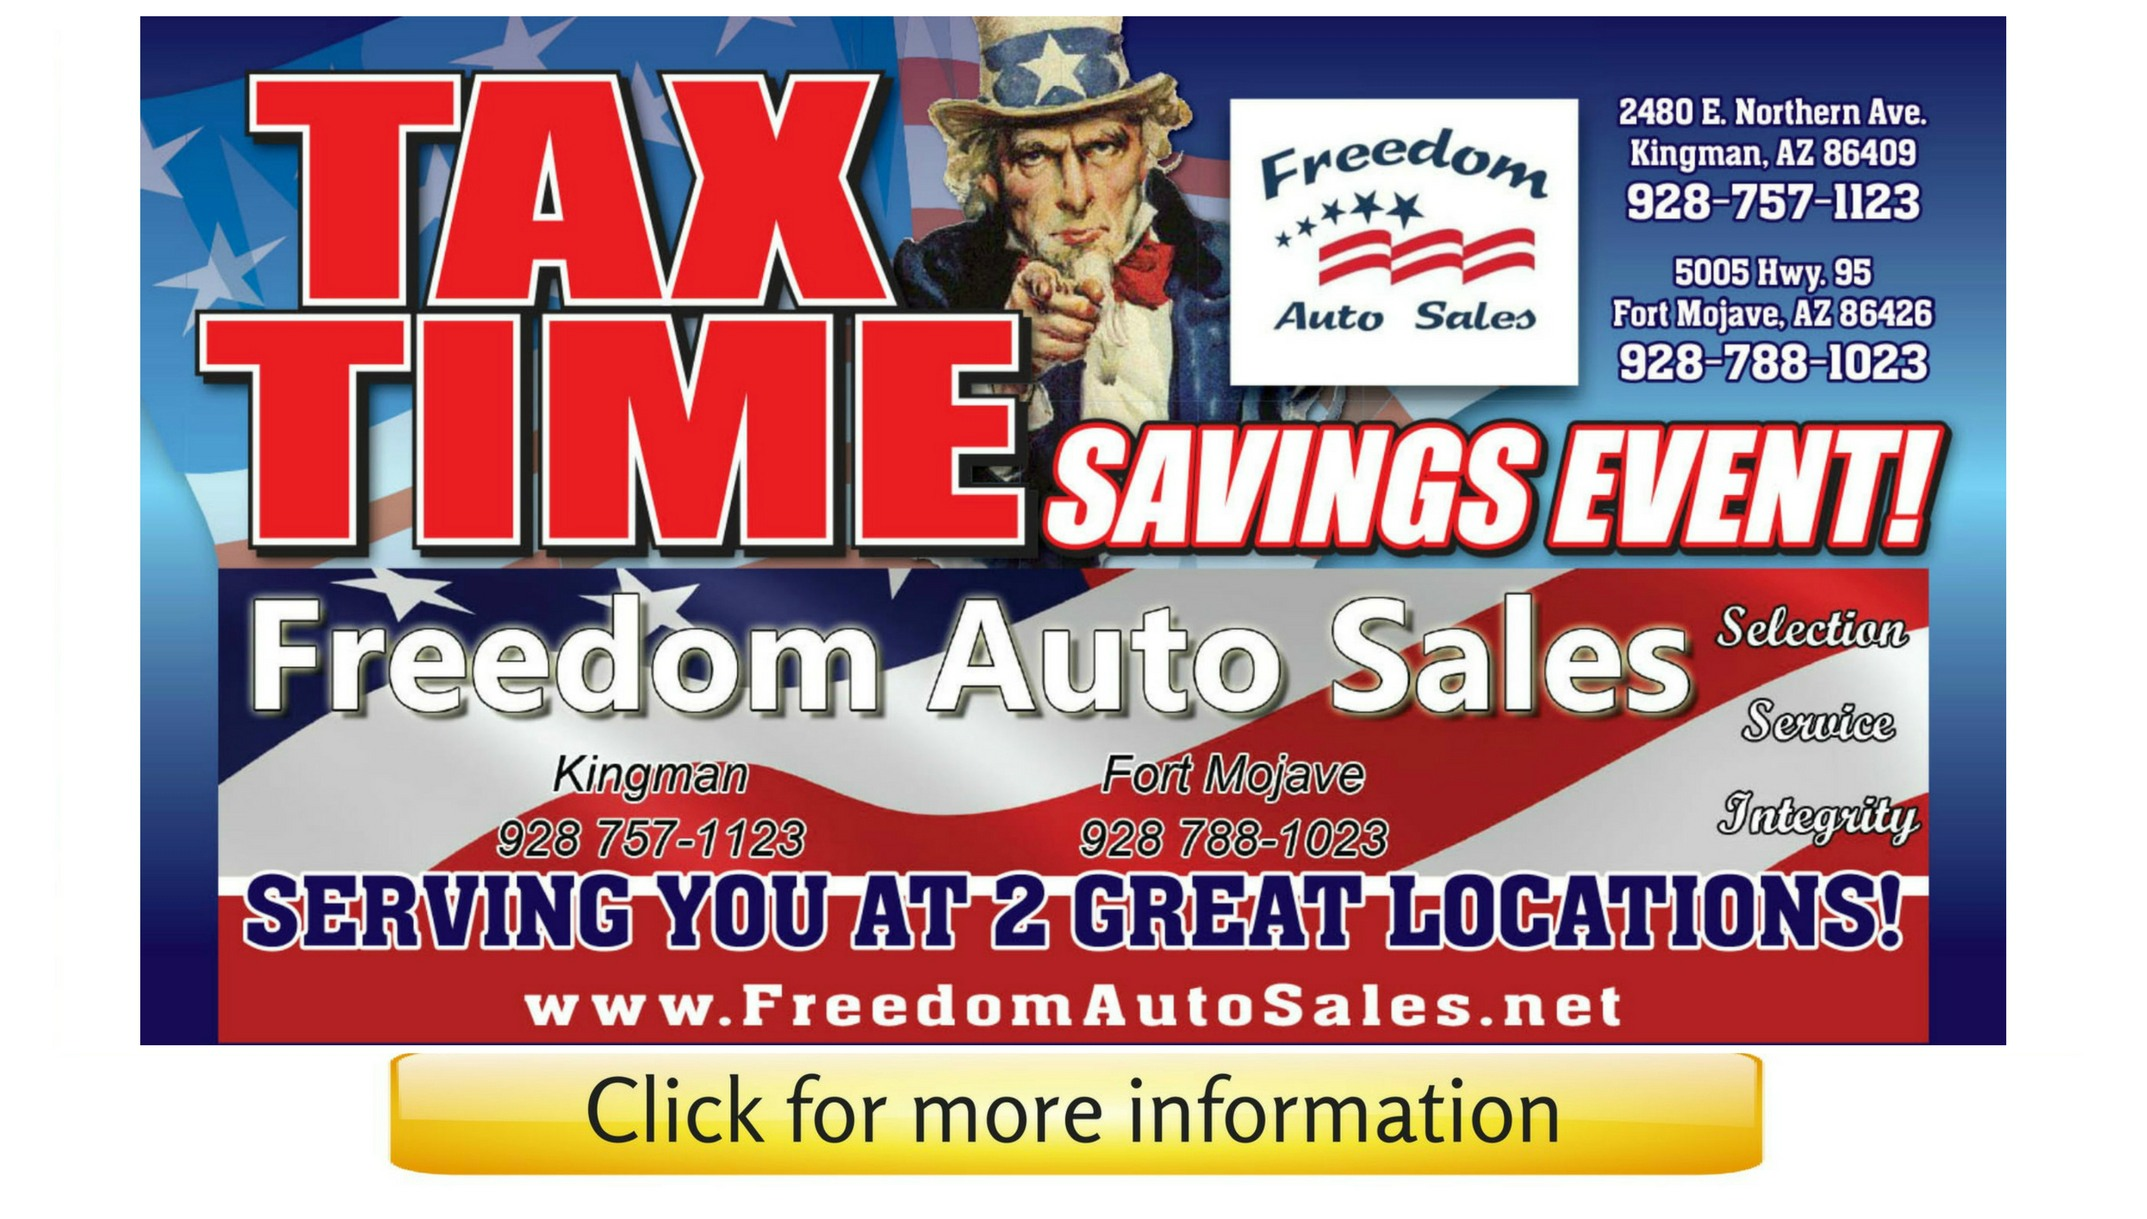 Freedom-Auto-Sales-Tax-Time-Sale-Used-Cars-Trucks-SUV